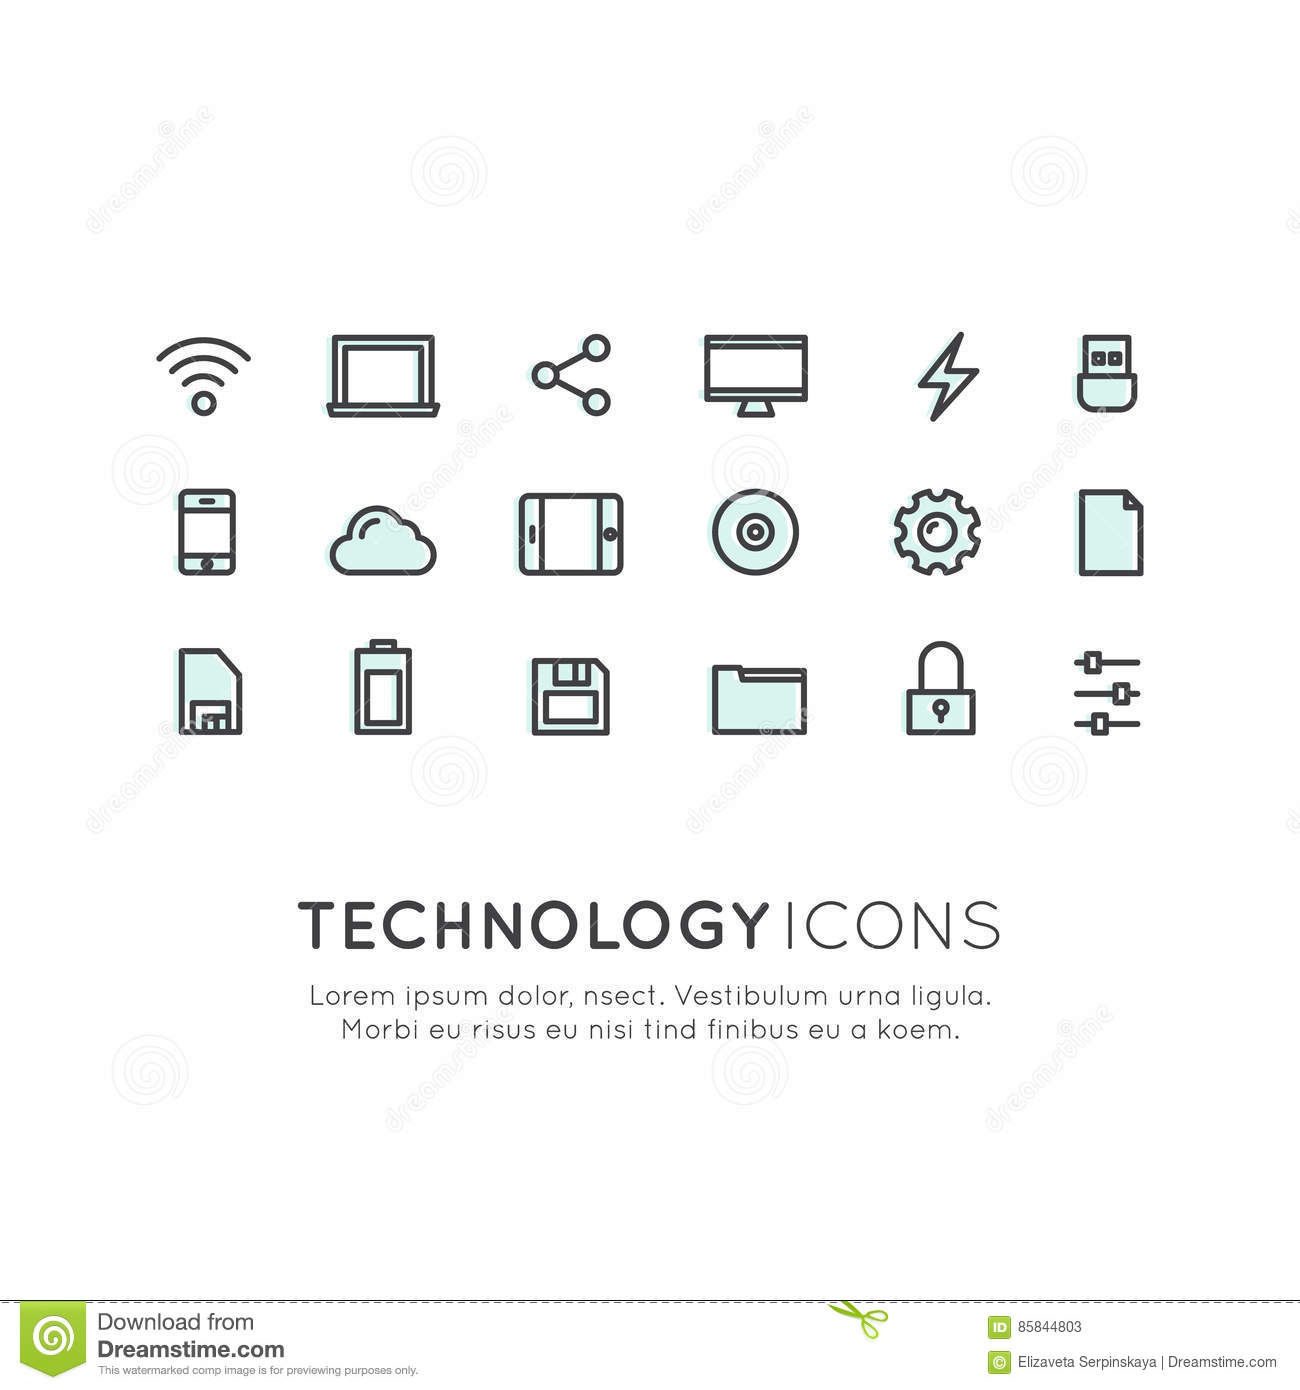 Technology mobile and internet tools devices network management technology mobile and internet tools devices network management networking and cloud computing web symbols biocorpaavc